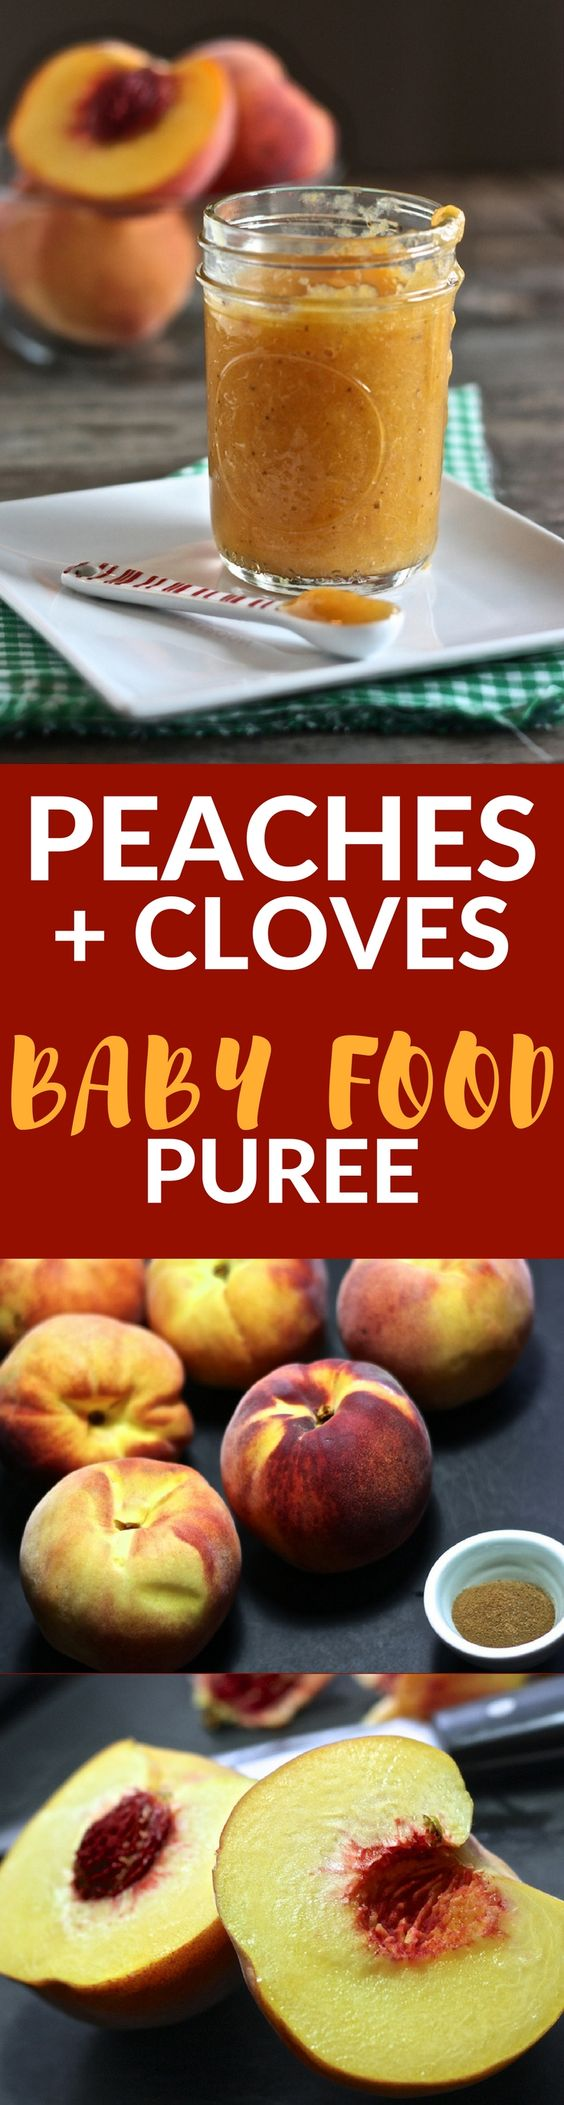 Peaches + cloves baby food puree | Recipe (With images ...